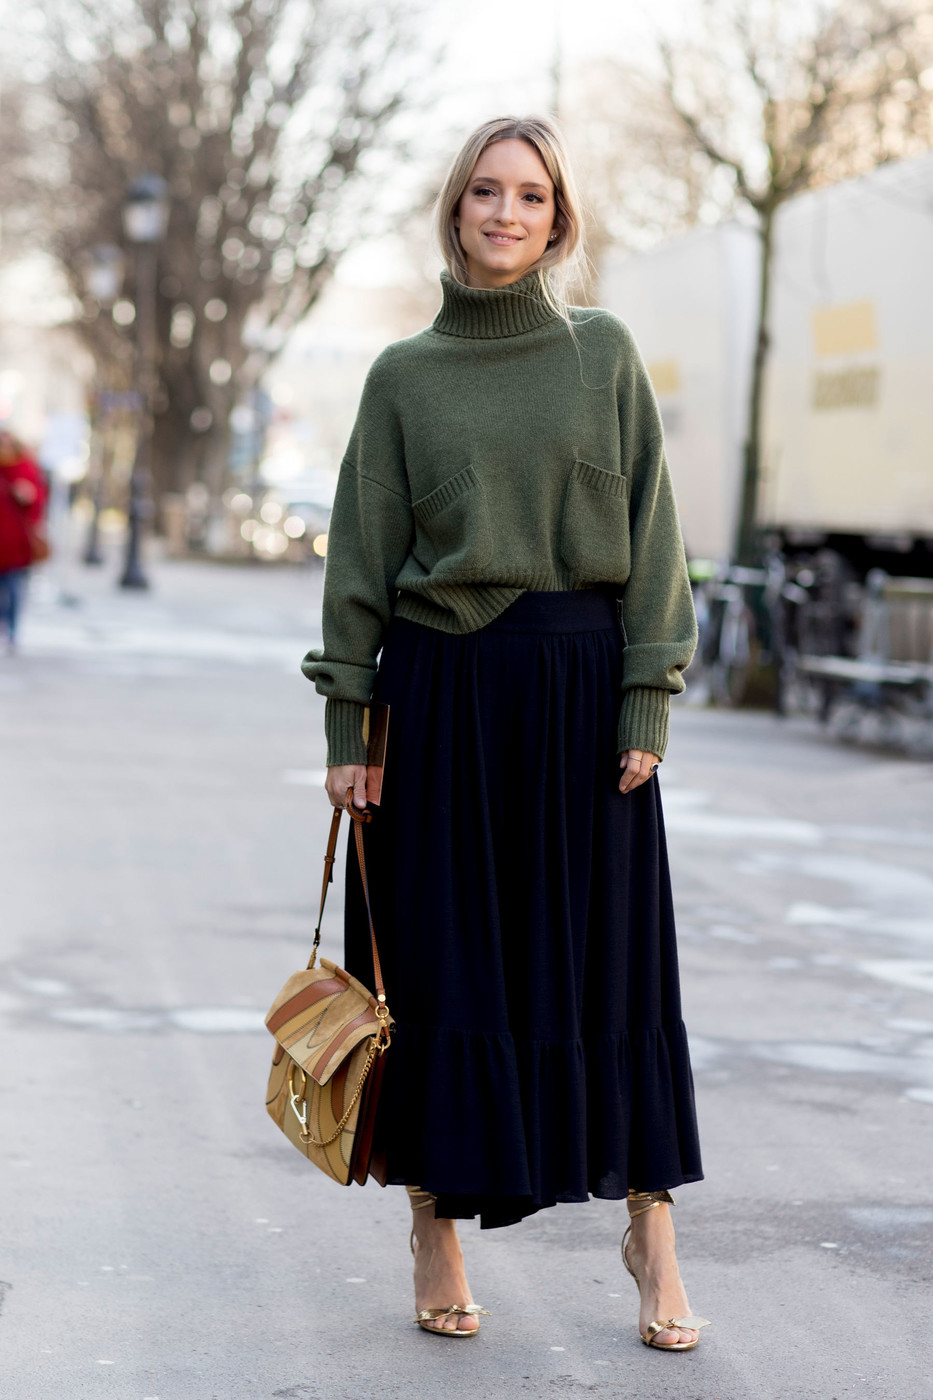 Chunky Sweater And Skirt 60 Outfit Ideas From Paris